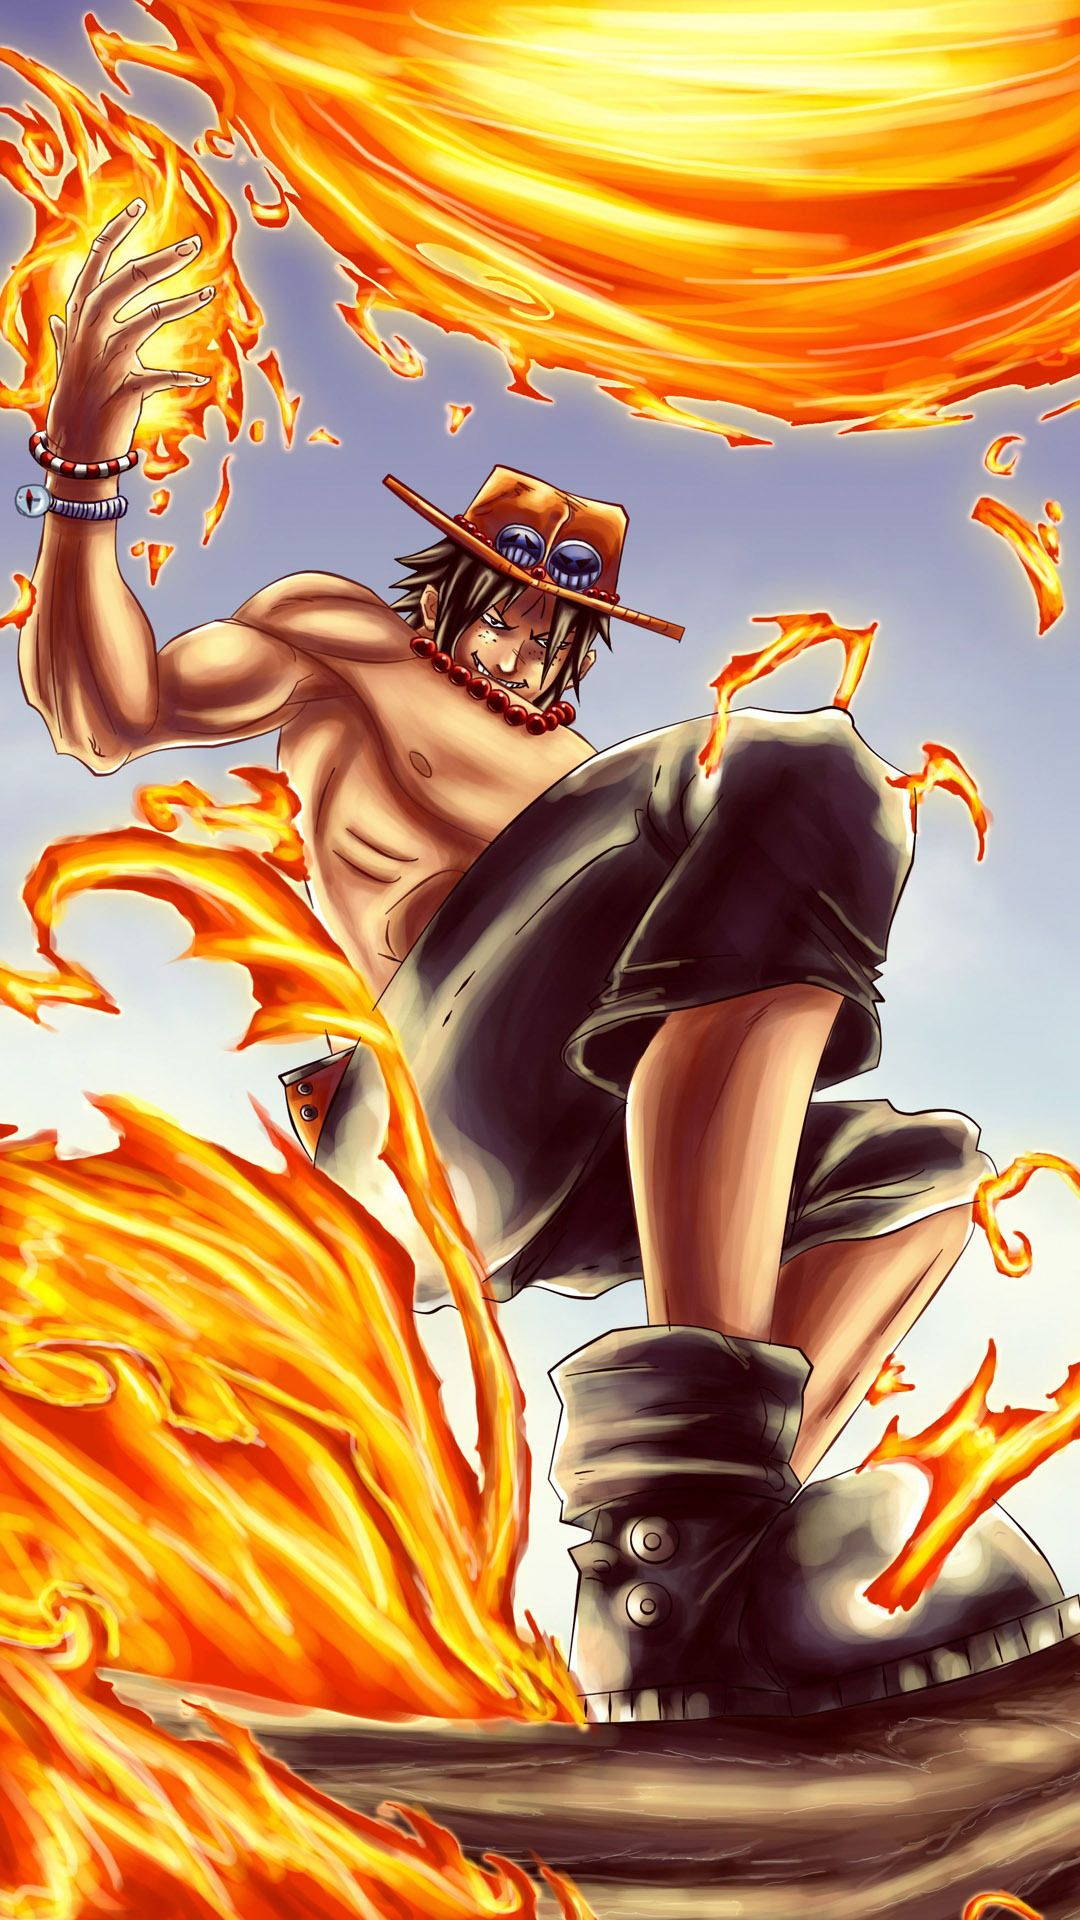 Portgas D Ace One Piece Mobile Wallpaper One Piece Wallpaper Iphone One Piece Anime One Piece Ace